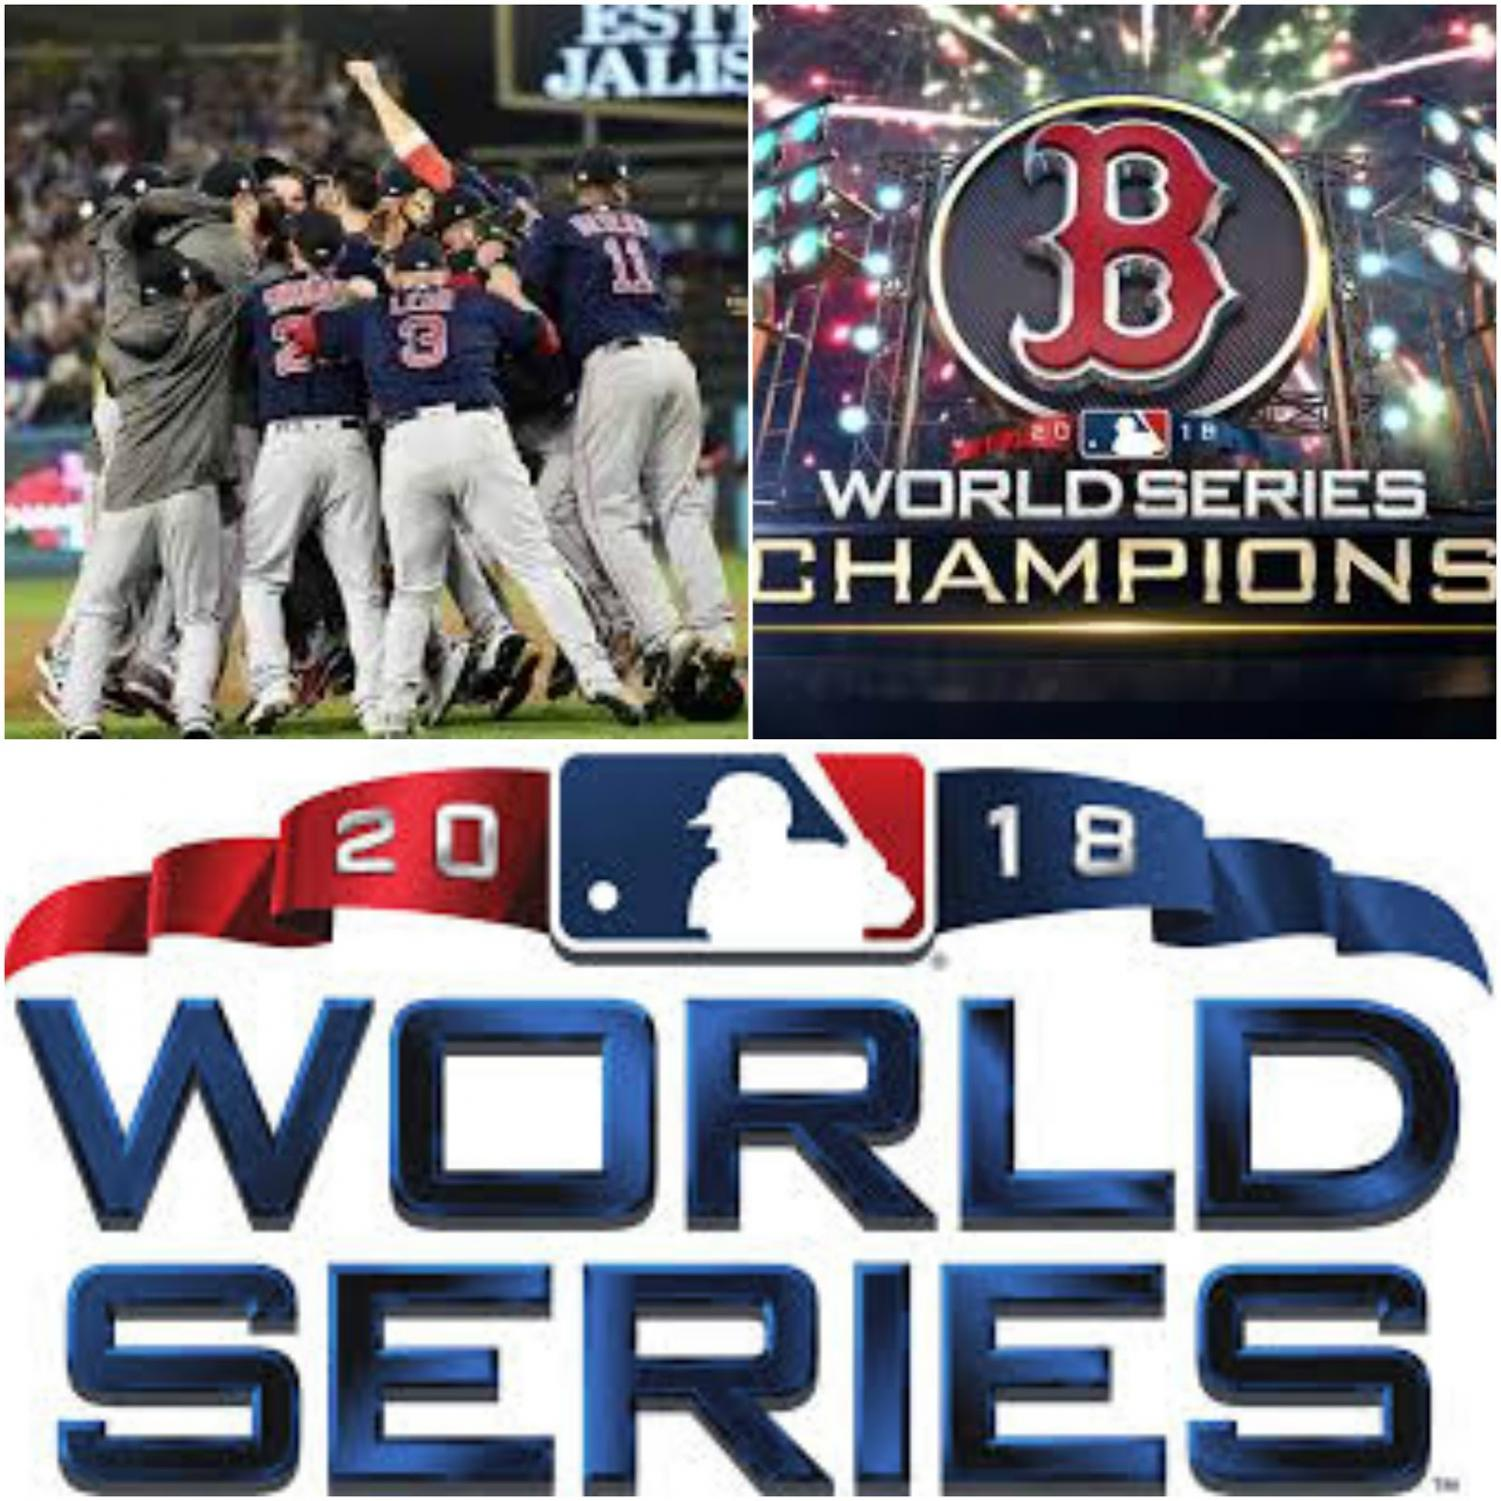 "Boston Red Sox won the World Series in 5 games over the Los Angeles Dodgers. When Cole Downs was asked about the 2018 World Series he responded, ""The Red Sox are just a great team!"" The Dodgers tried to rebuild their team this year after their loss in the World Series last year against the Houston Astros, but once again they came short. Photo credits: Top Left: Fox5dc.com, Top Right: kktv.com, Bottom: wikipedia.org"